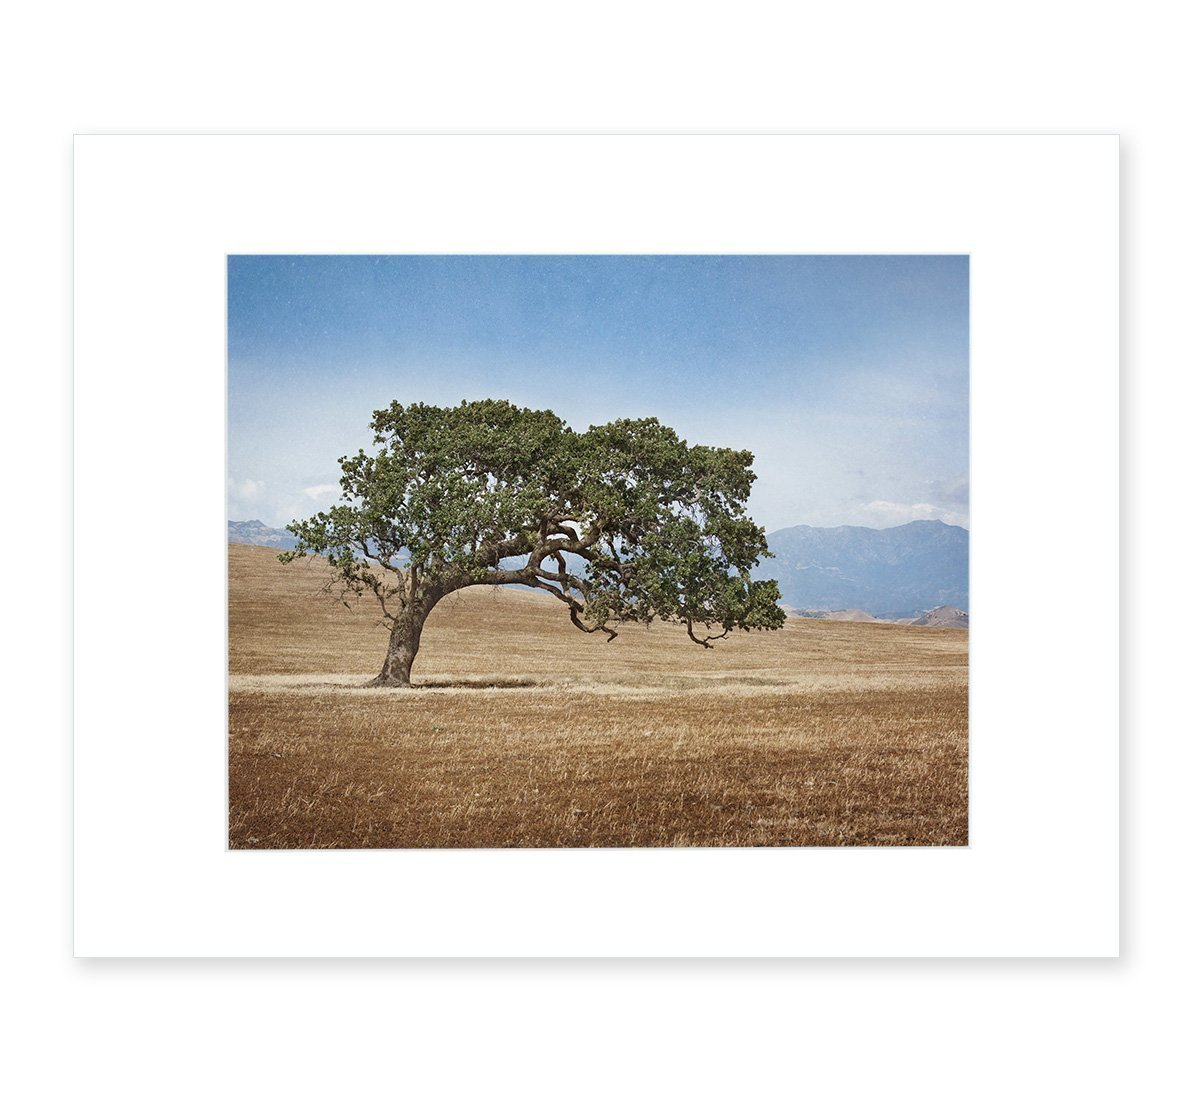 California Landscape Wall Art Oak in Wine Tree Max 40% Outlet SALE OFF Picture Country